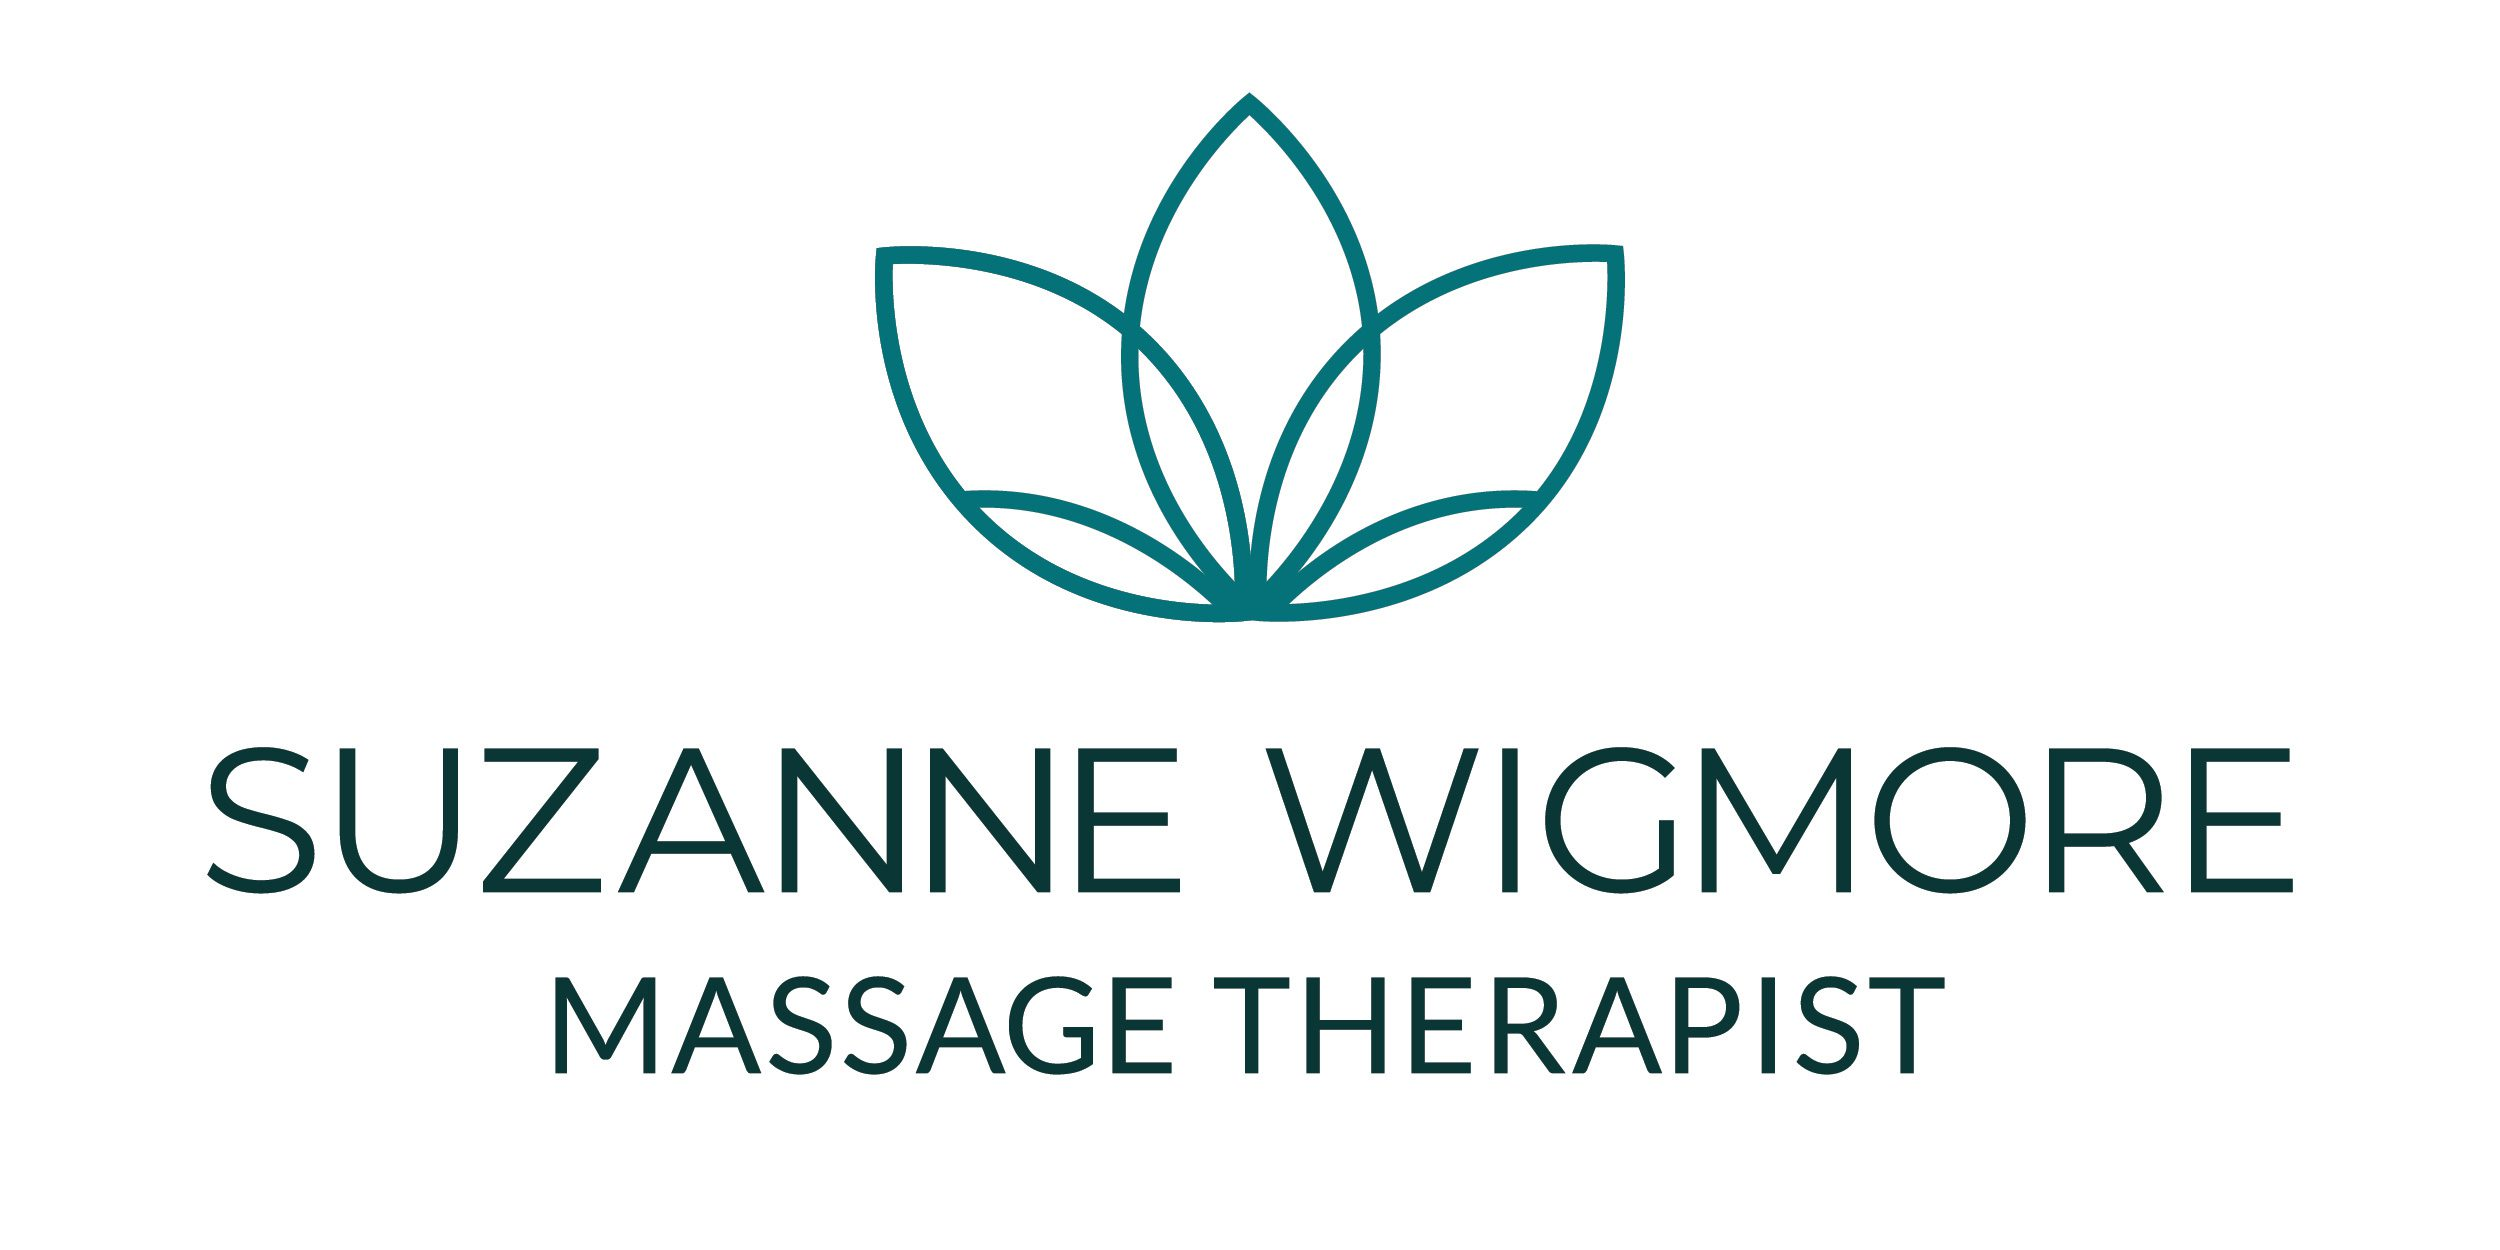 SUZANNE WIGMORE MASSAGE THERAPIST